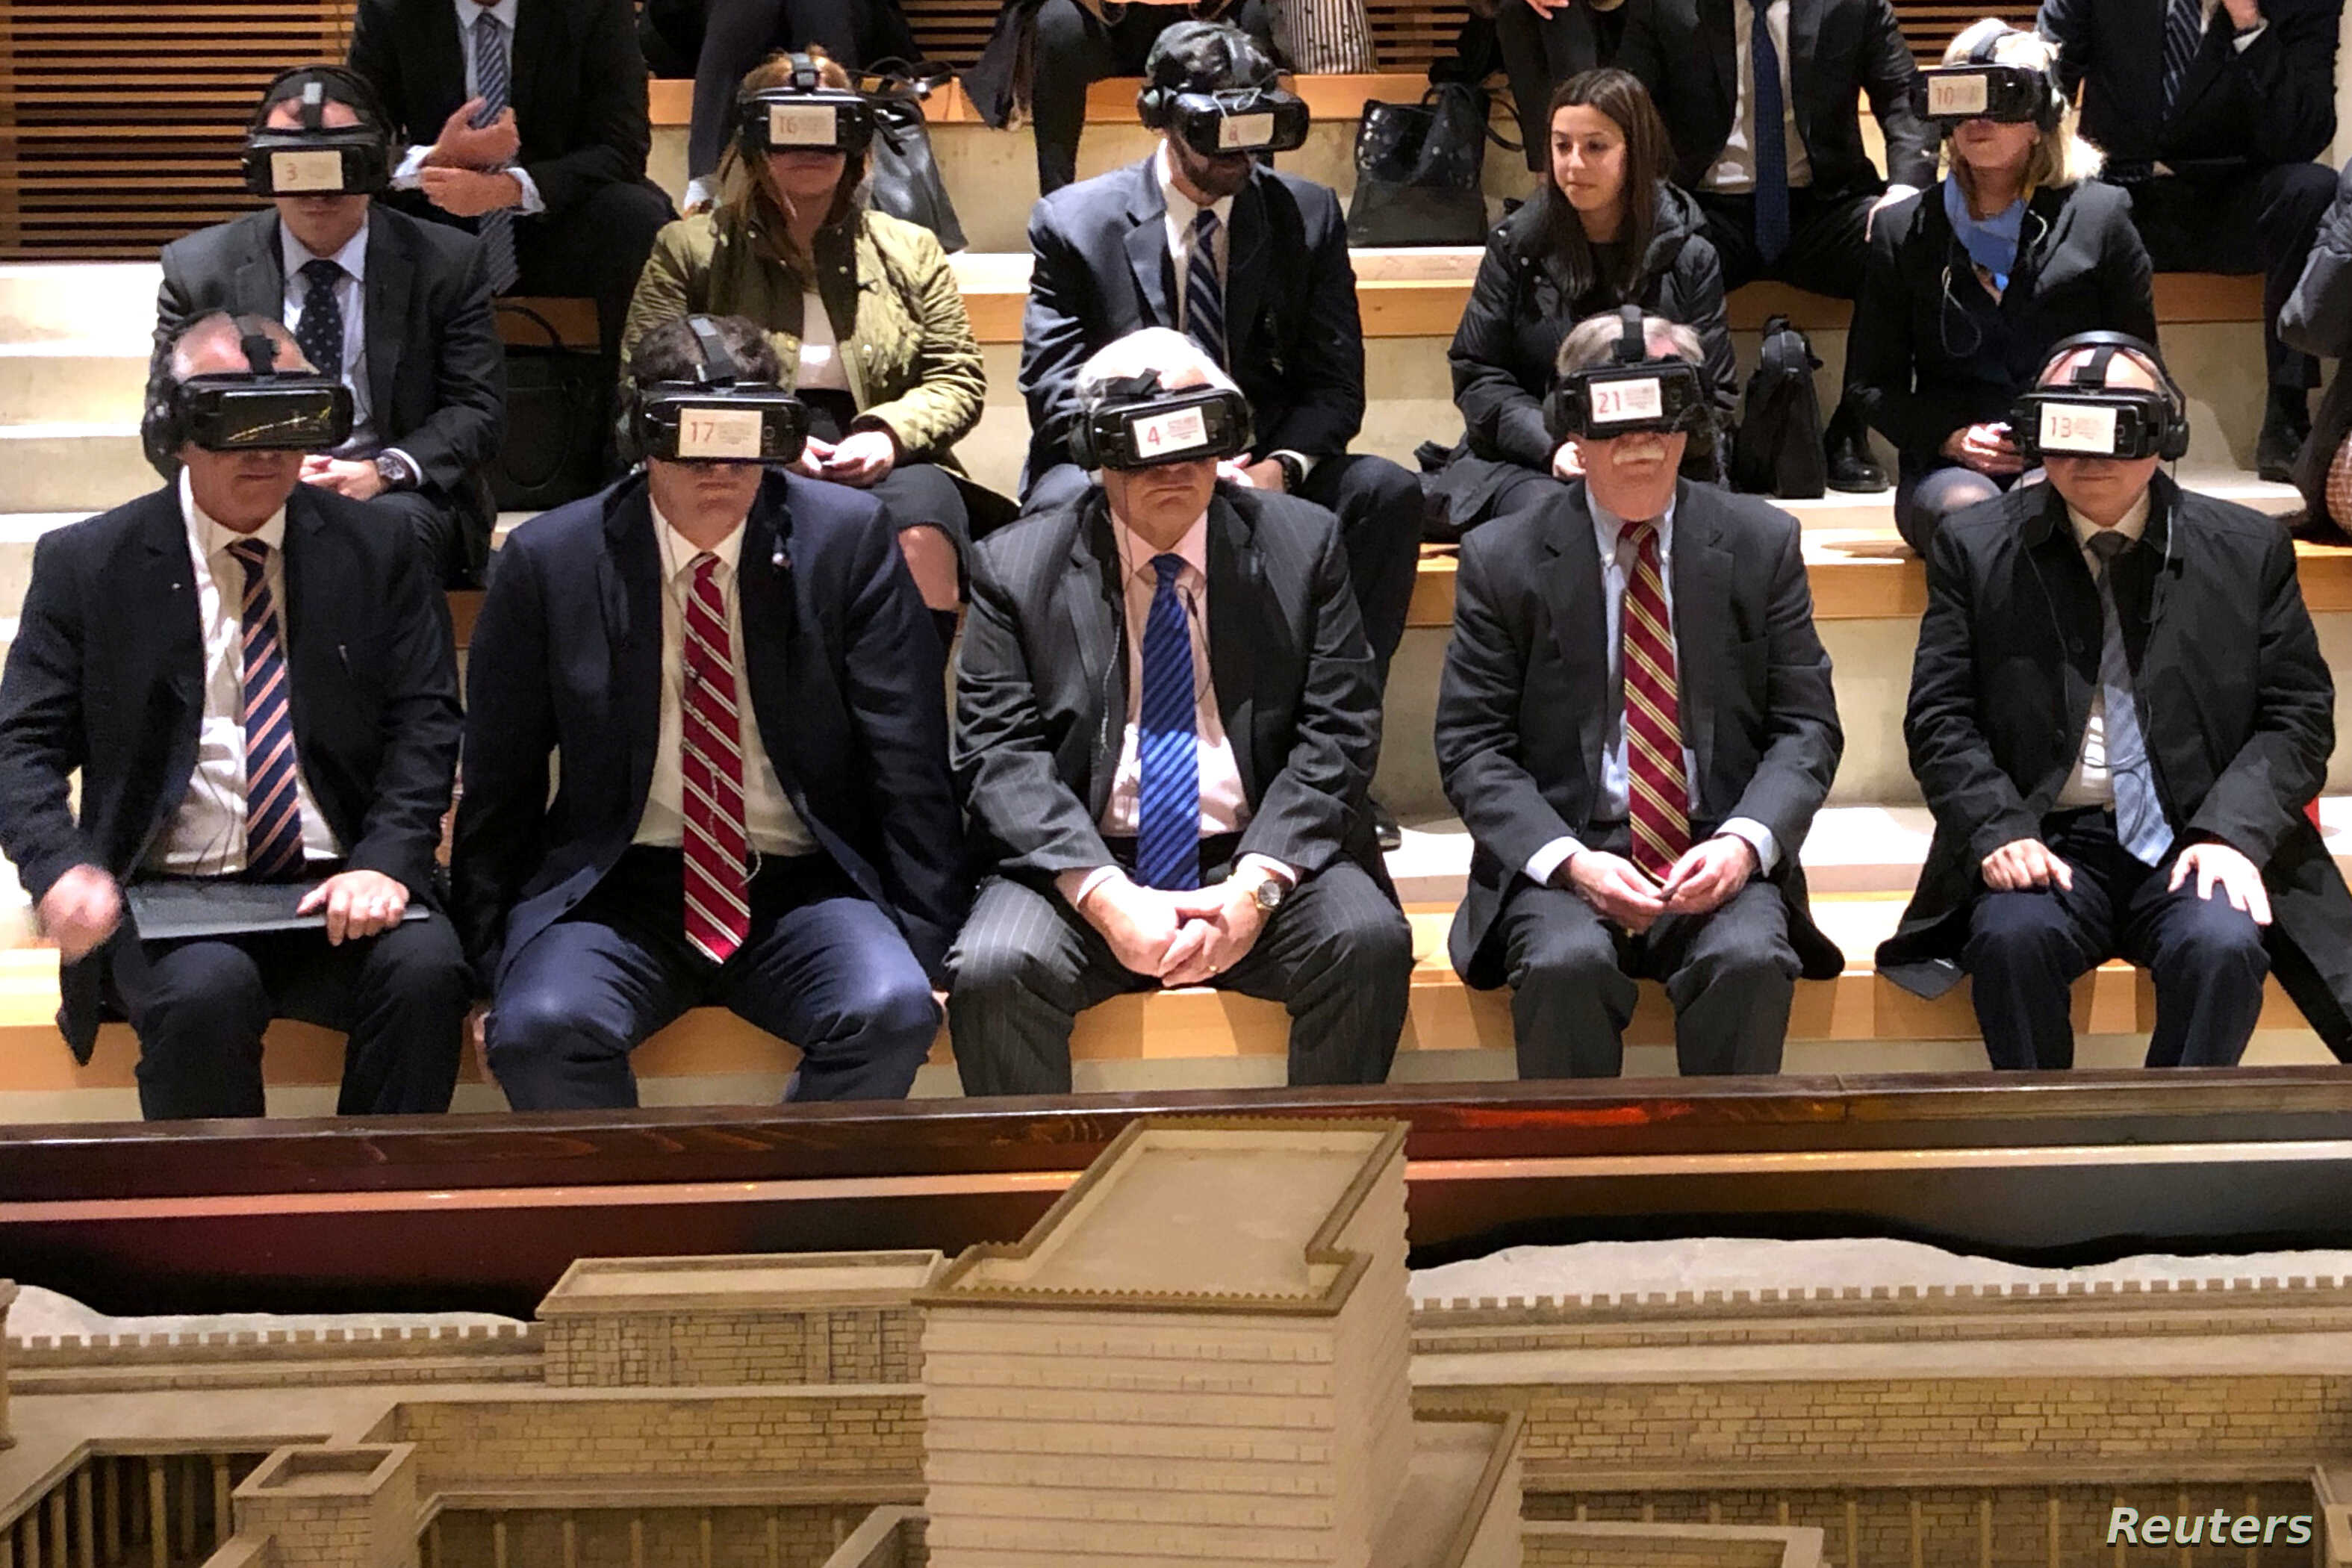 White House national security adviser John Bolton (2nd R) wears virtual reality goggles during a visit to the Western Wall tunnel complex in Jerusalem's Old City, Jan. 6, 2019.